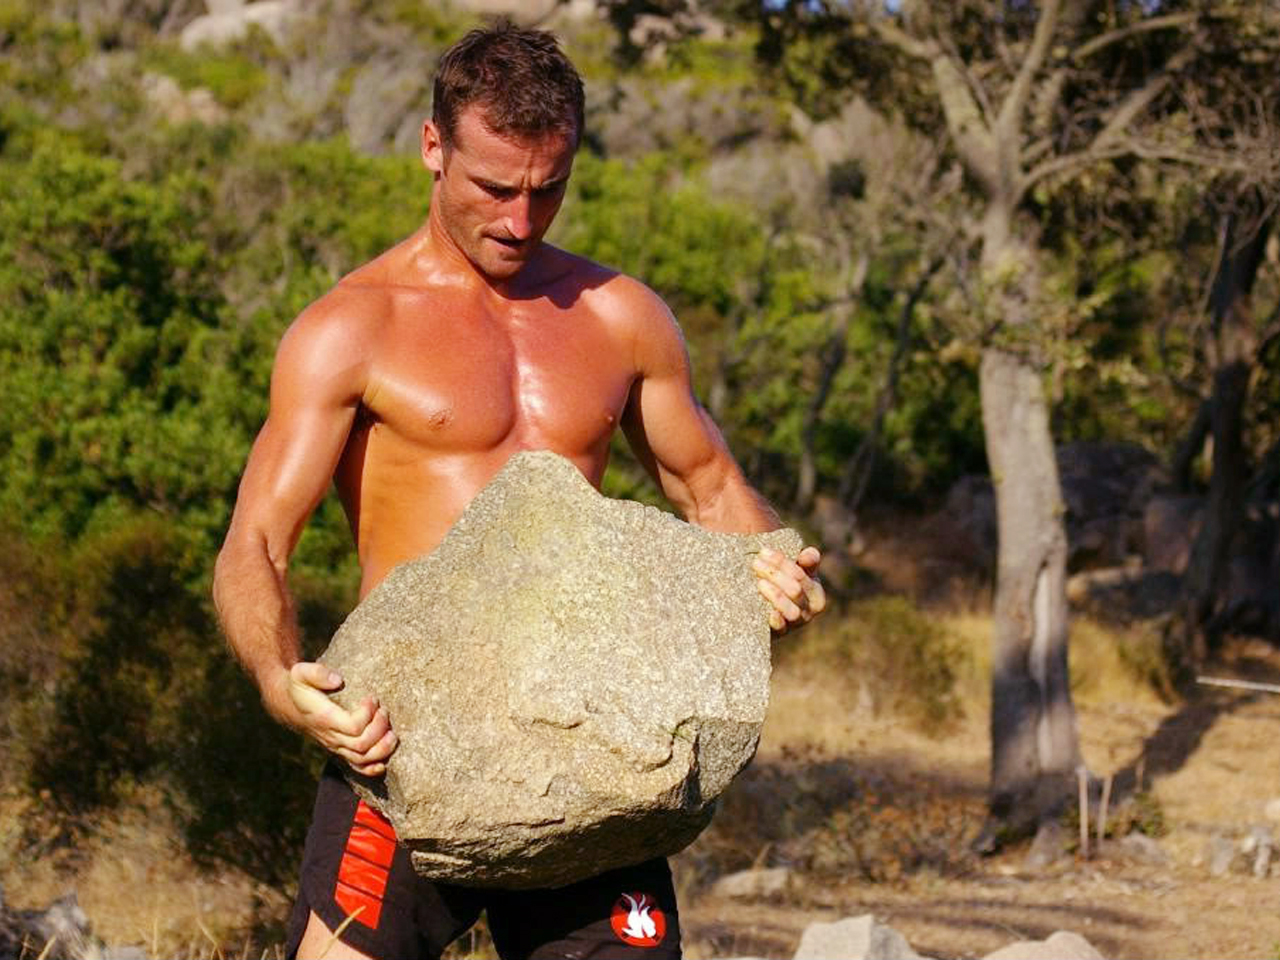 Caveman Rocks : Get primal work out like a cave man or woman today